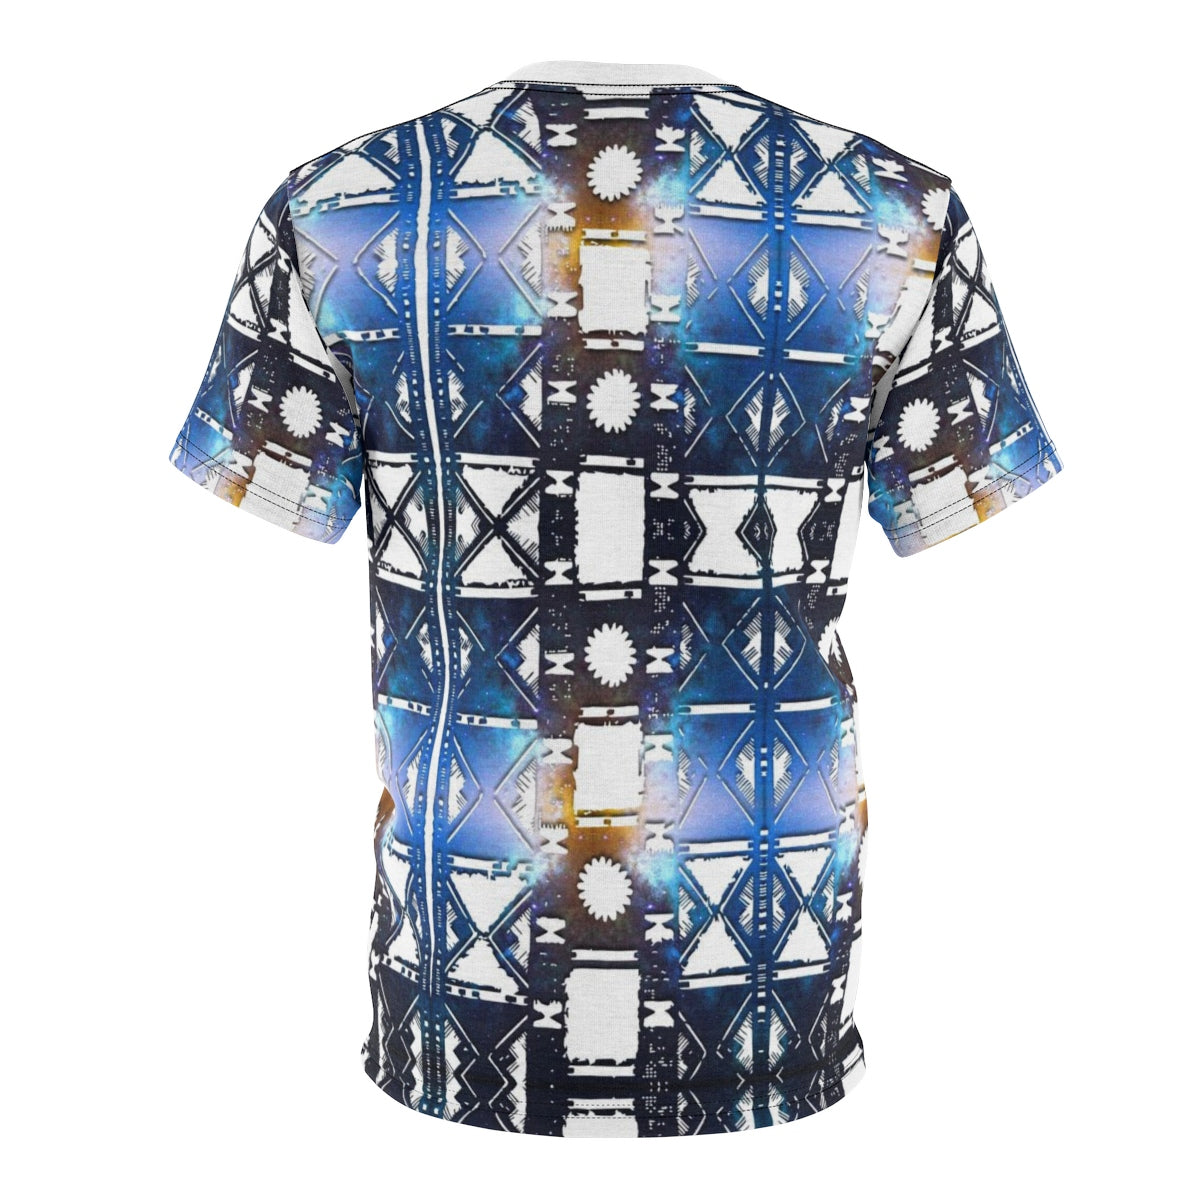 Fiji Islands #0012 (T-shirt)